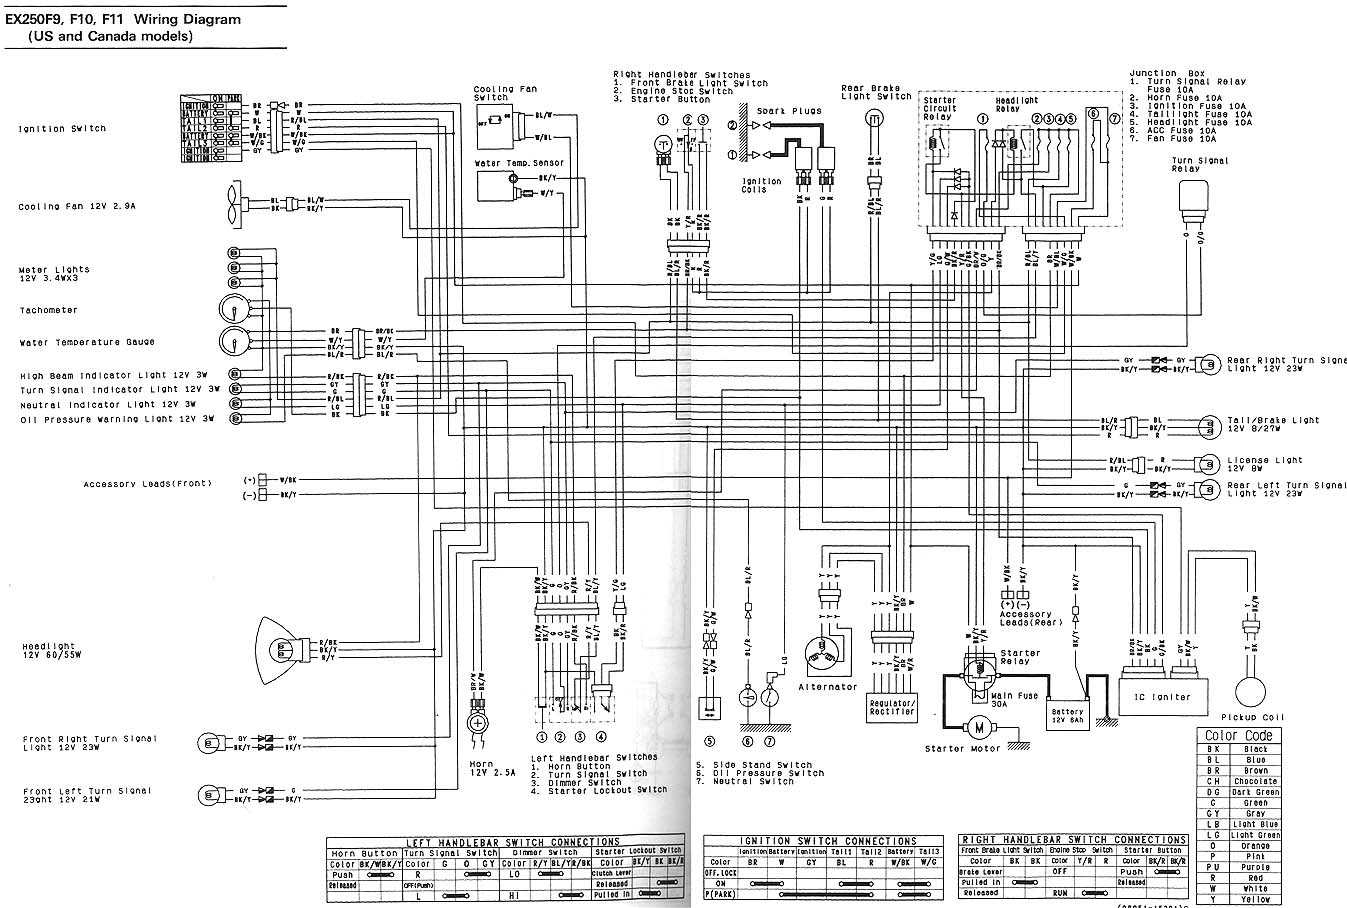 Kawasaki Ninja 250 Wiring Diagram Books Of Wiring Diagram \u2022 Kawasaki  Electrical Diagrams Kawasaki Ninja Wiring Diagrams